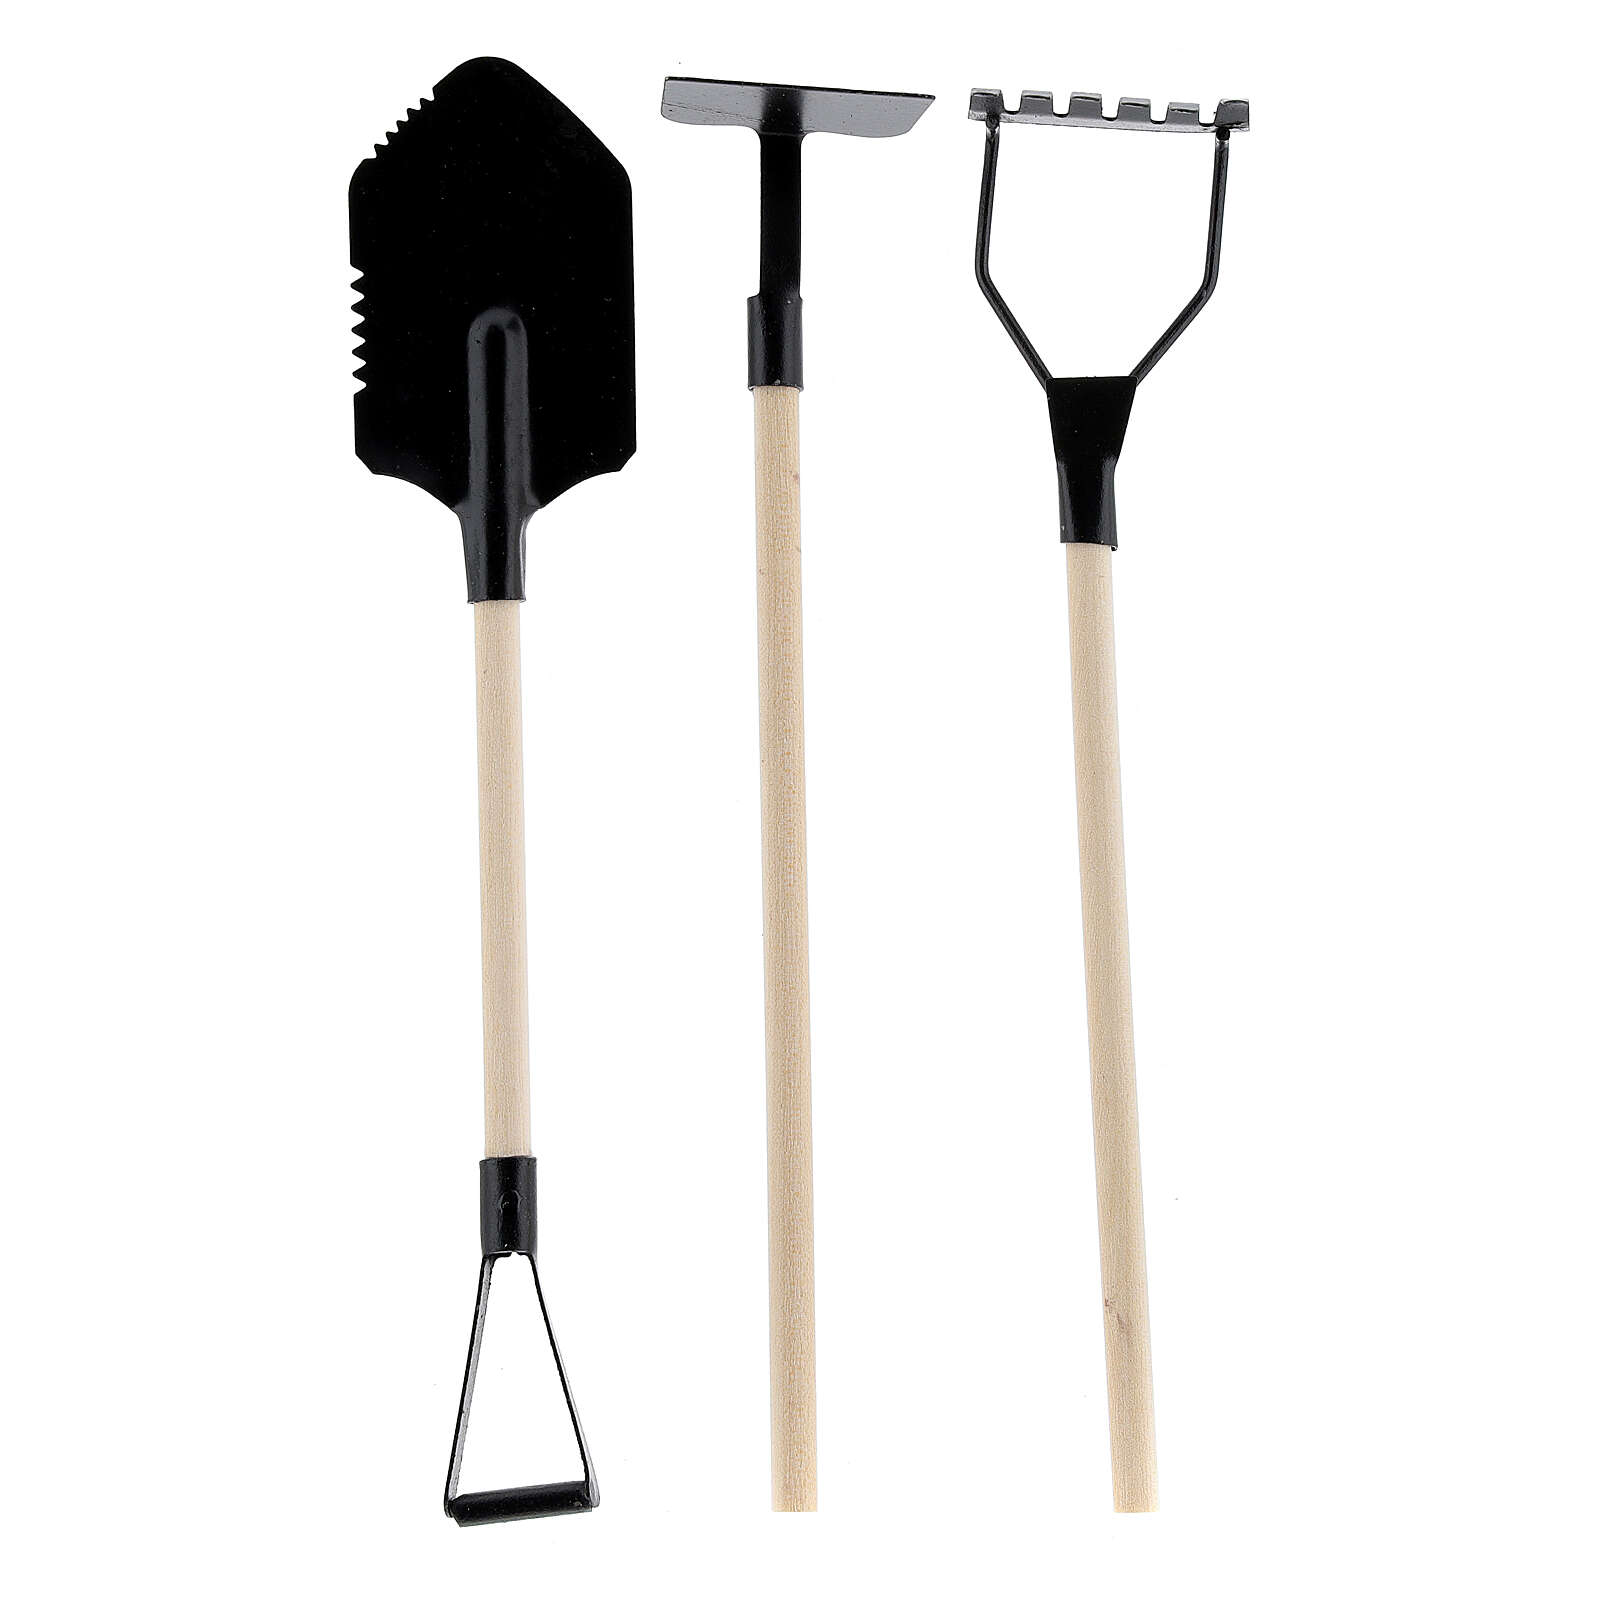 Set of 3 gardening tools for Nativity Scene with 18-20 cm figurines 4